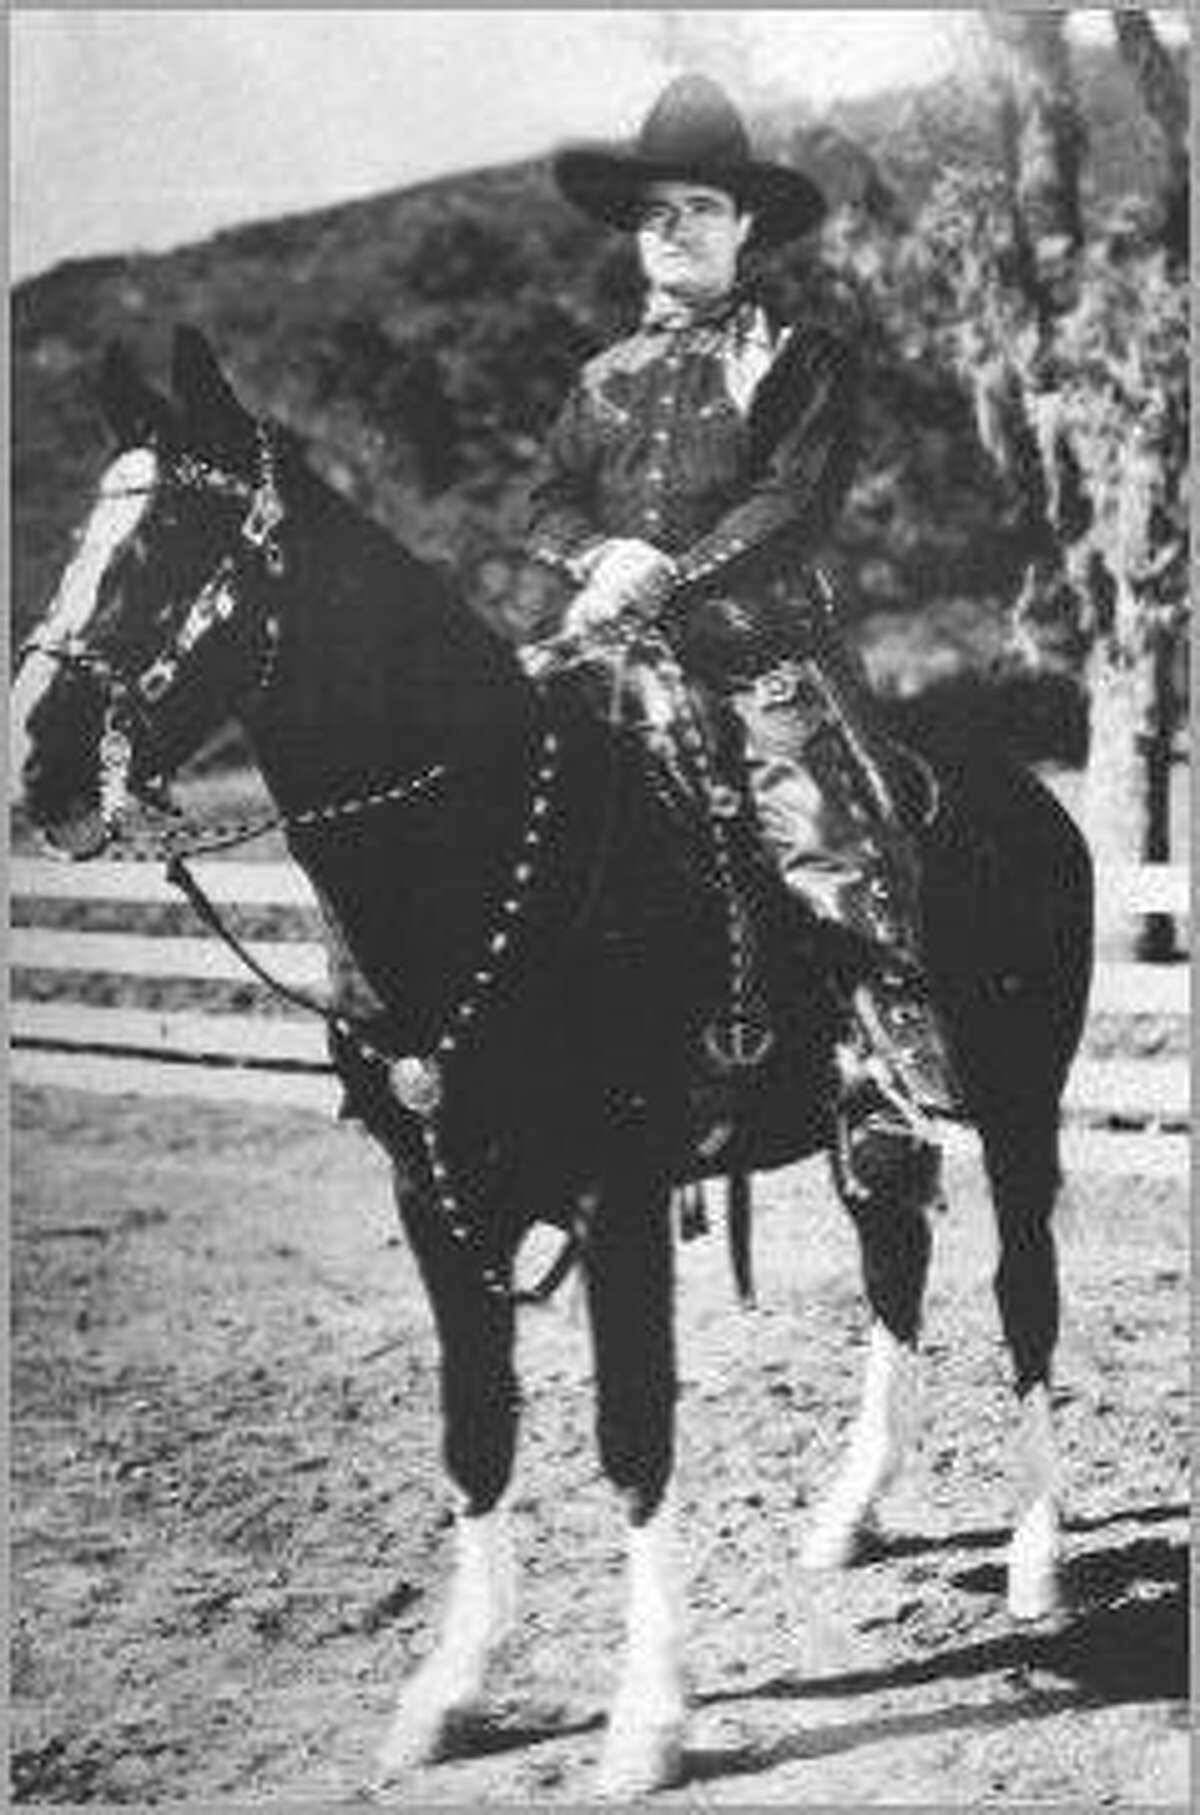 TOM MIX Above, Tom Mix during the early 1930s at Universal and atop Tony Jr. (has four white socks). HOUCHRON CAPTION (02/05/2002): Tom Mix atop Tony Jr. on the Old Corral Web site.